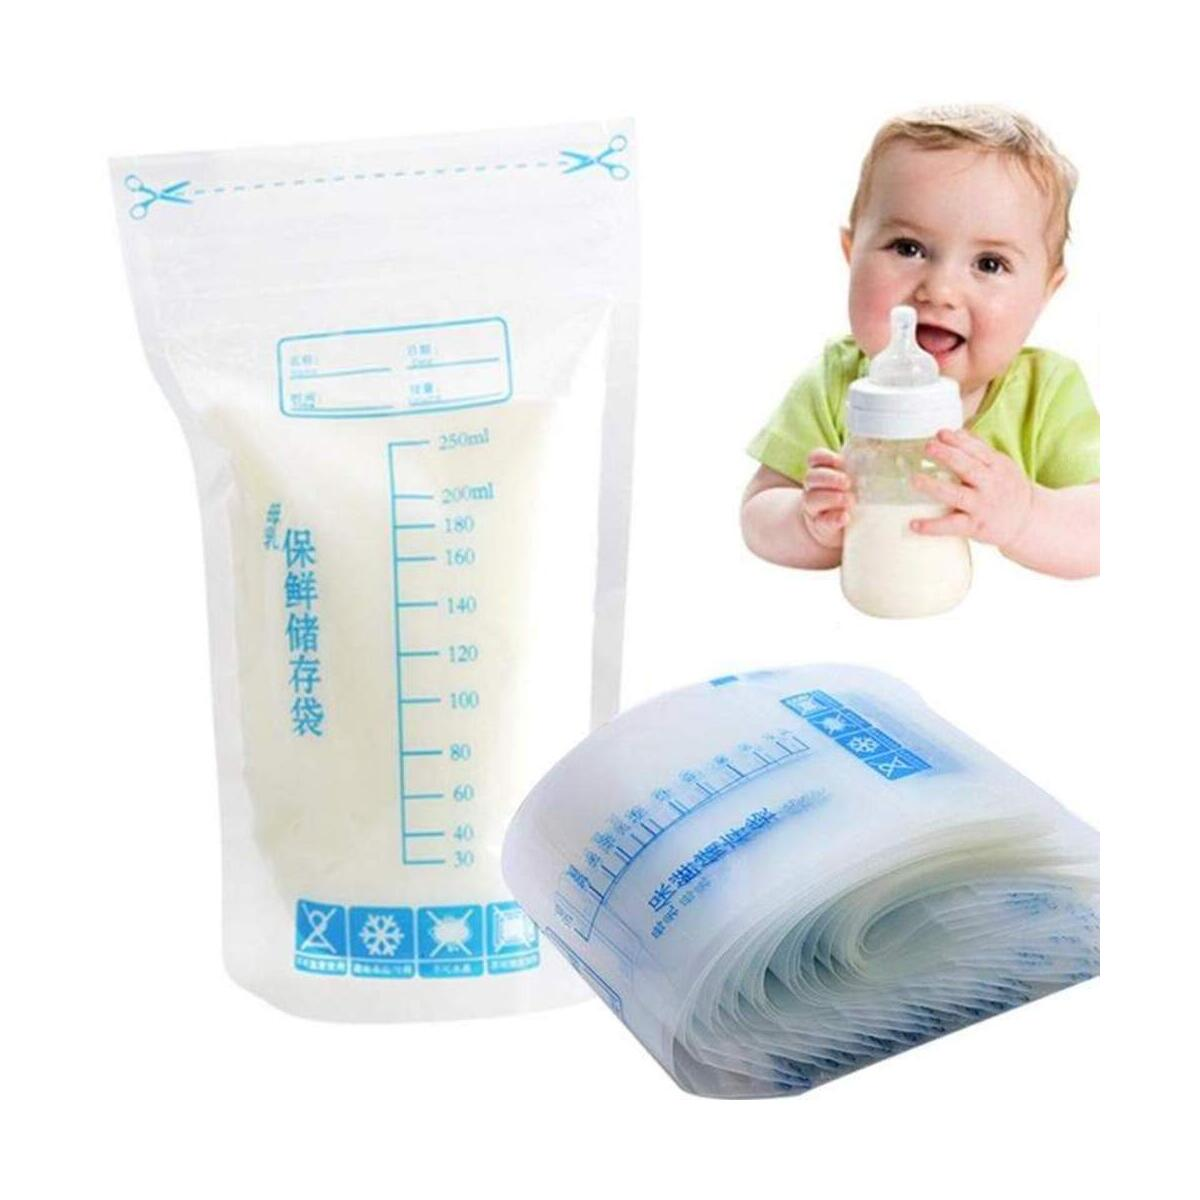 Breastmilk Storage Baby Bags Breastfeeding Mother Freezer Storage Container Bags for Breast Milk Comes Pre Sterilized Accurate Measurements Leak Proof